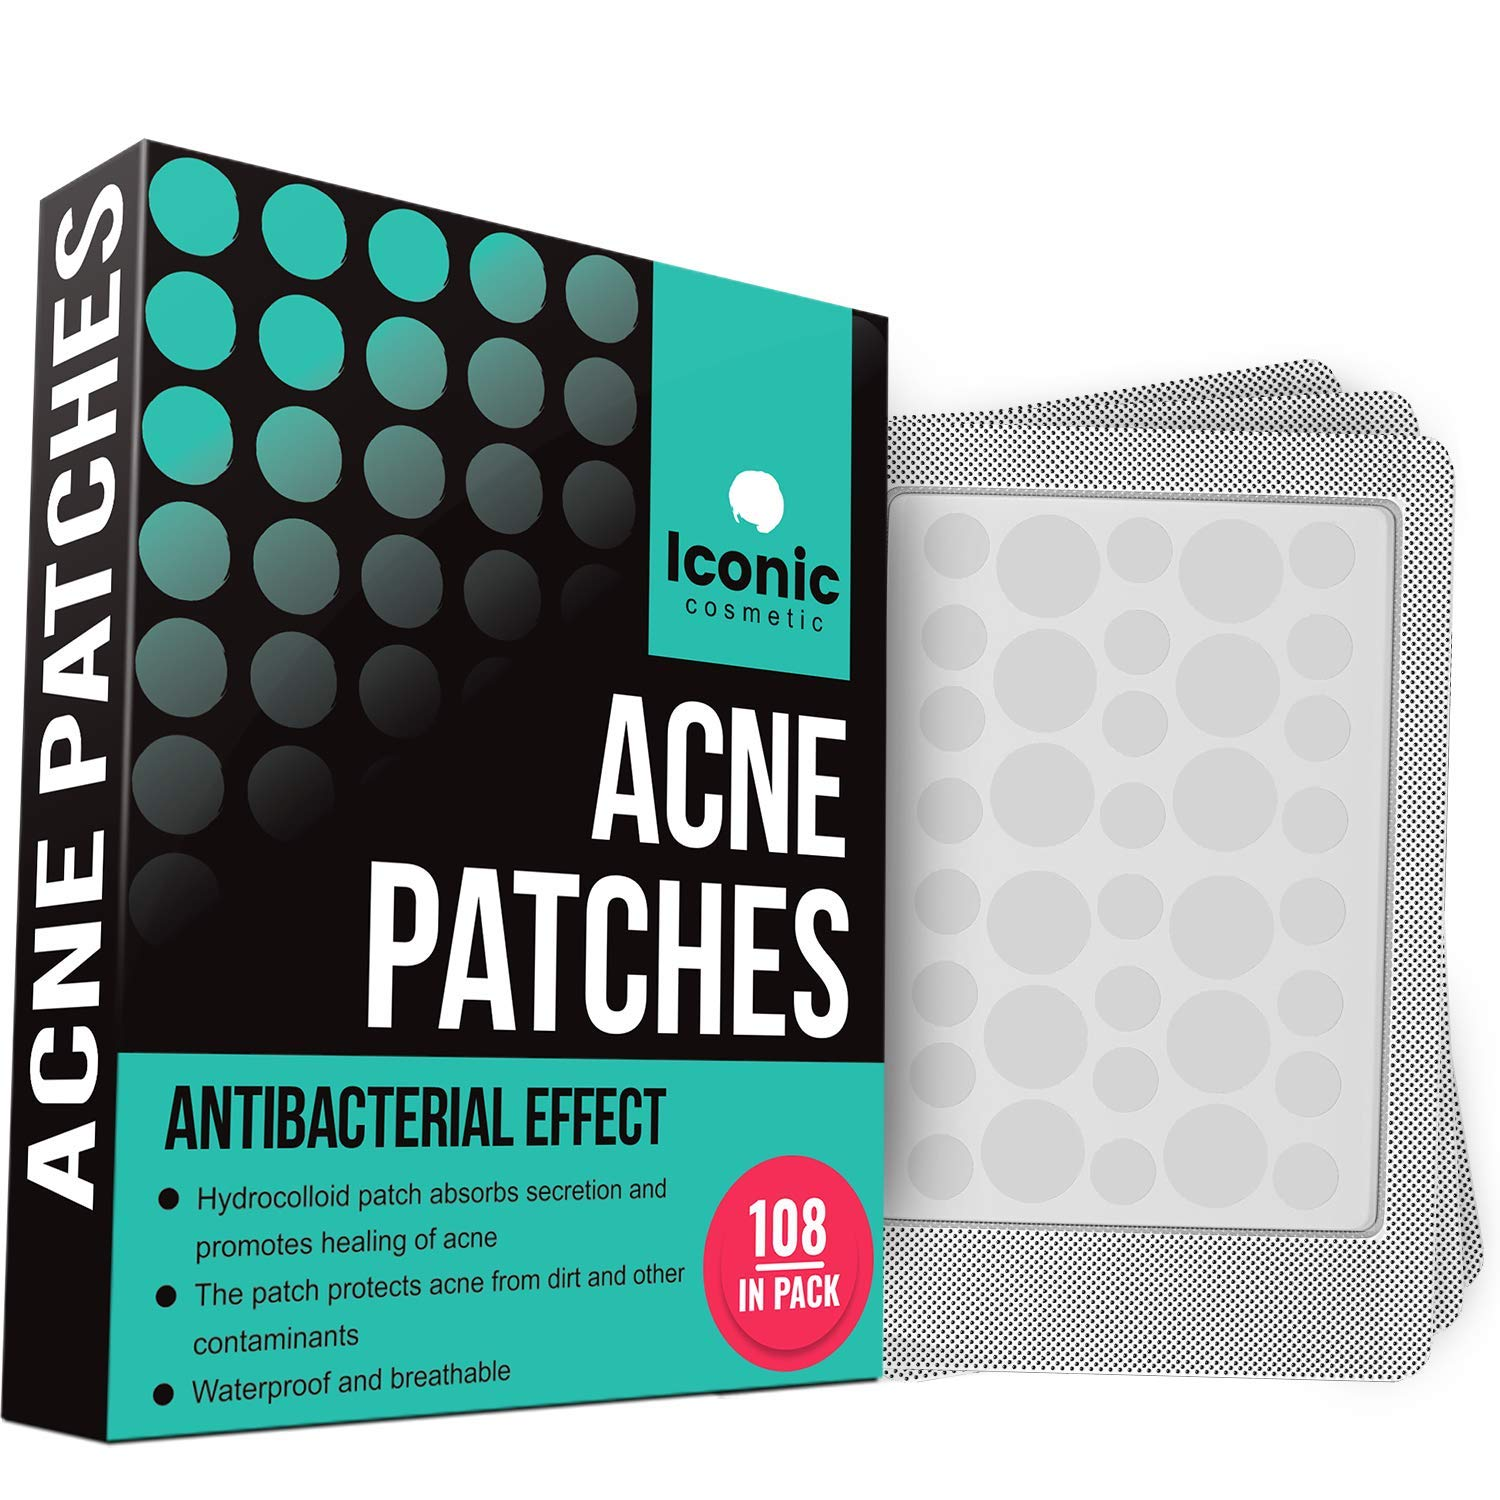 Acne Pimple Healing Patch - Absorbing Cover, Invisible, Blemish Spot, Hydrocolloid, Skin Treatment, Facial Stickers, Two Sizes, Blends in with skin(108 Patches) by iconic